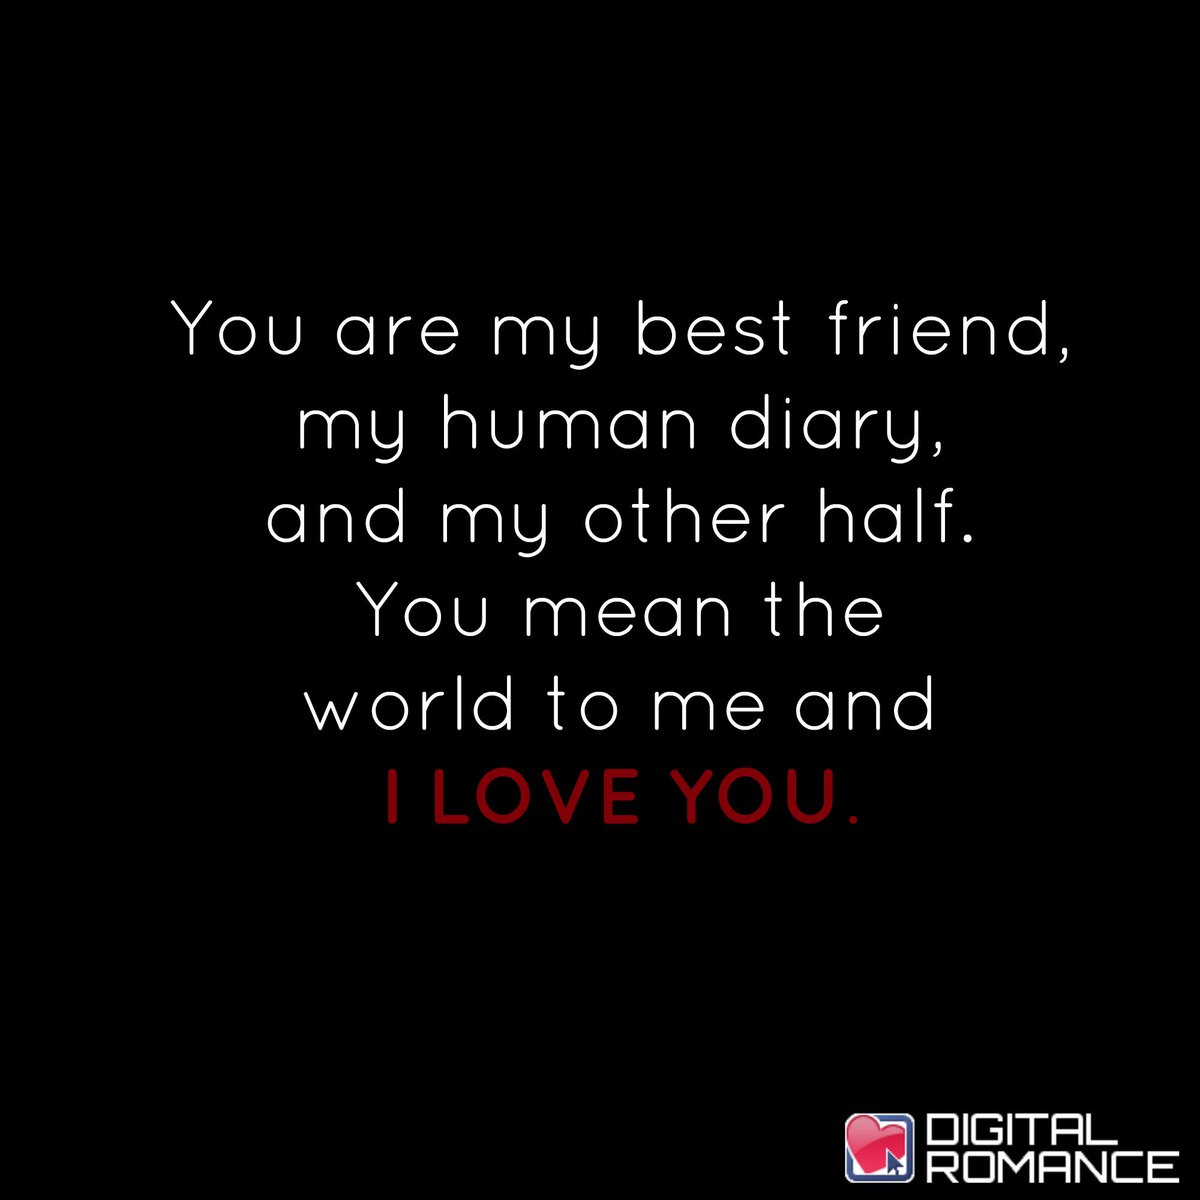 Digital Romance Inc On Twitter You Are My Best Friend My Human